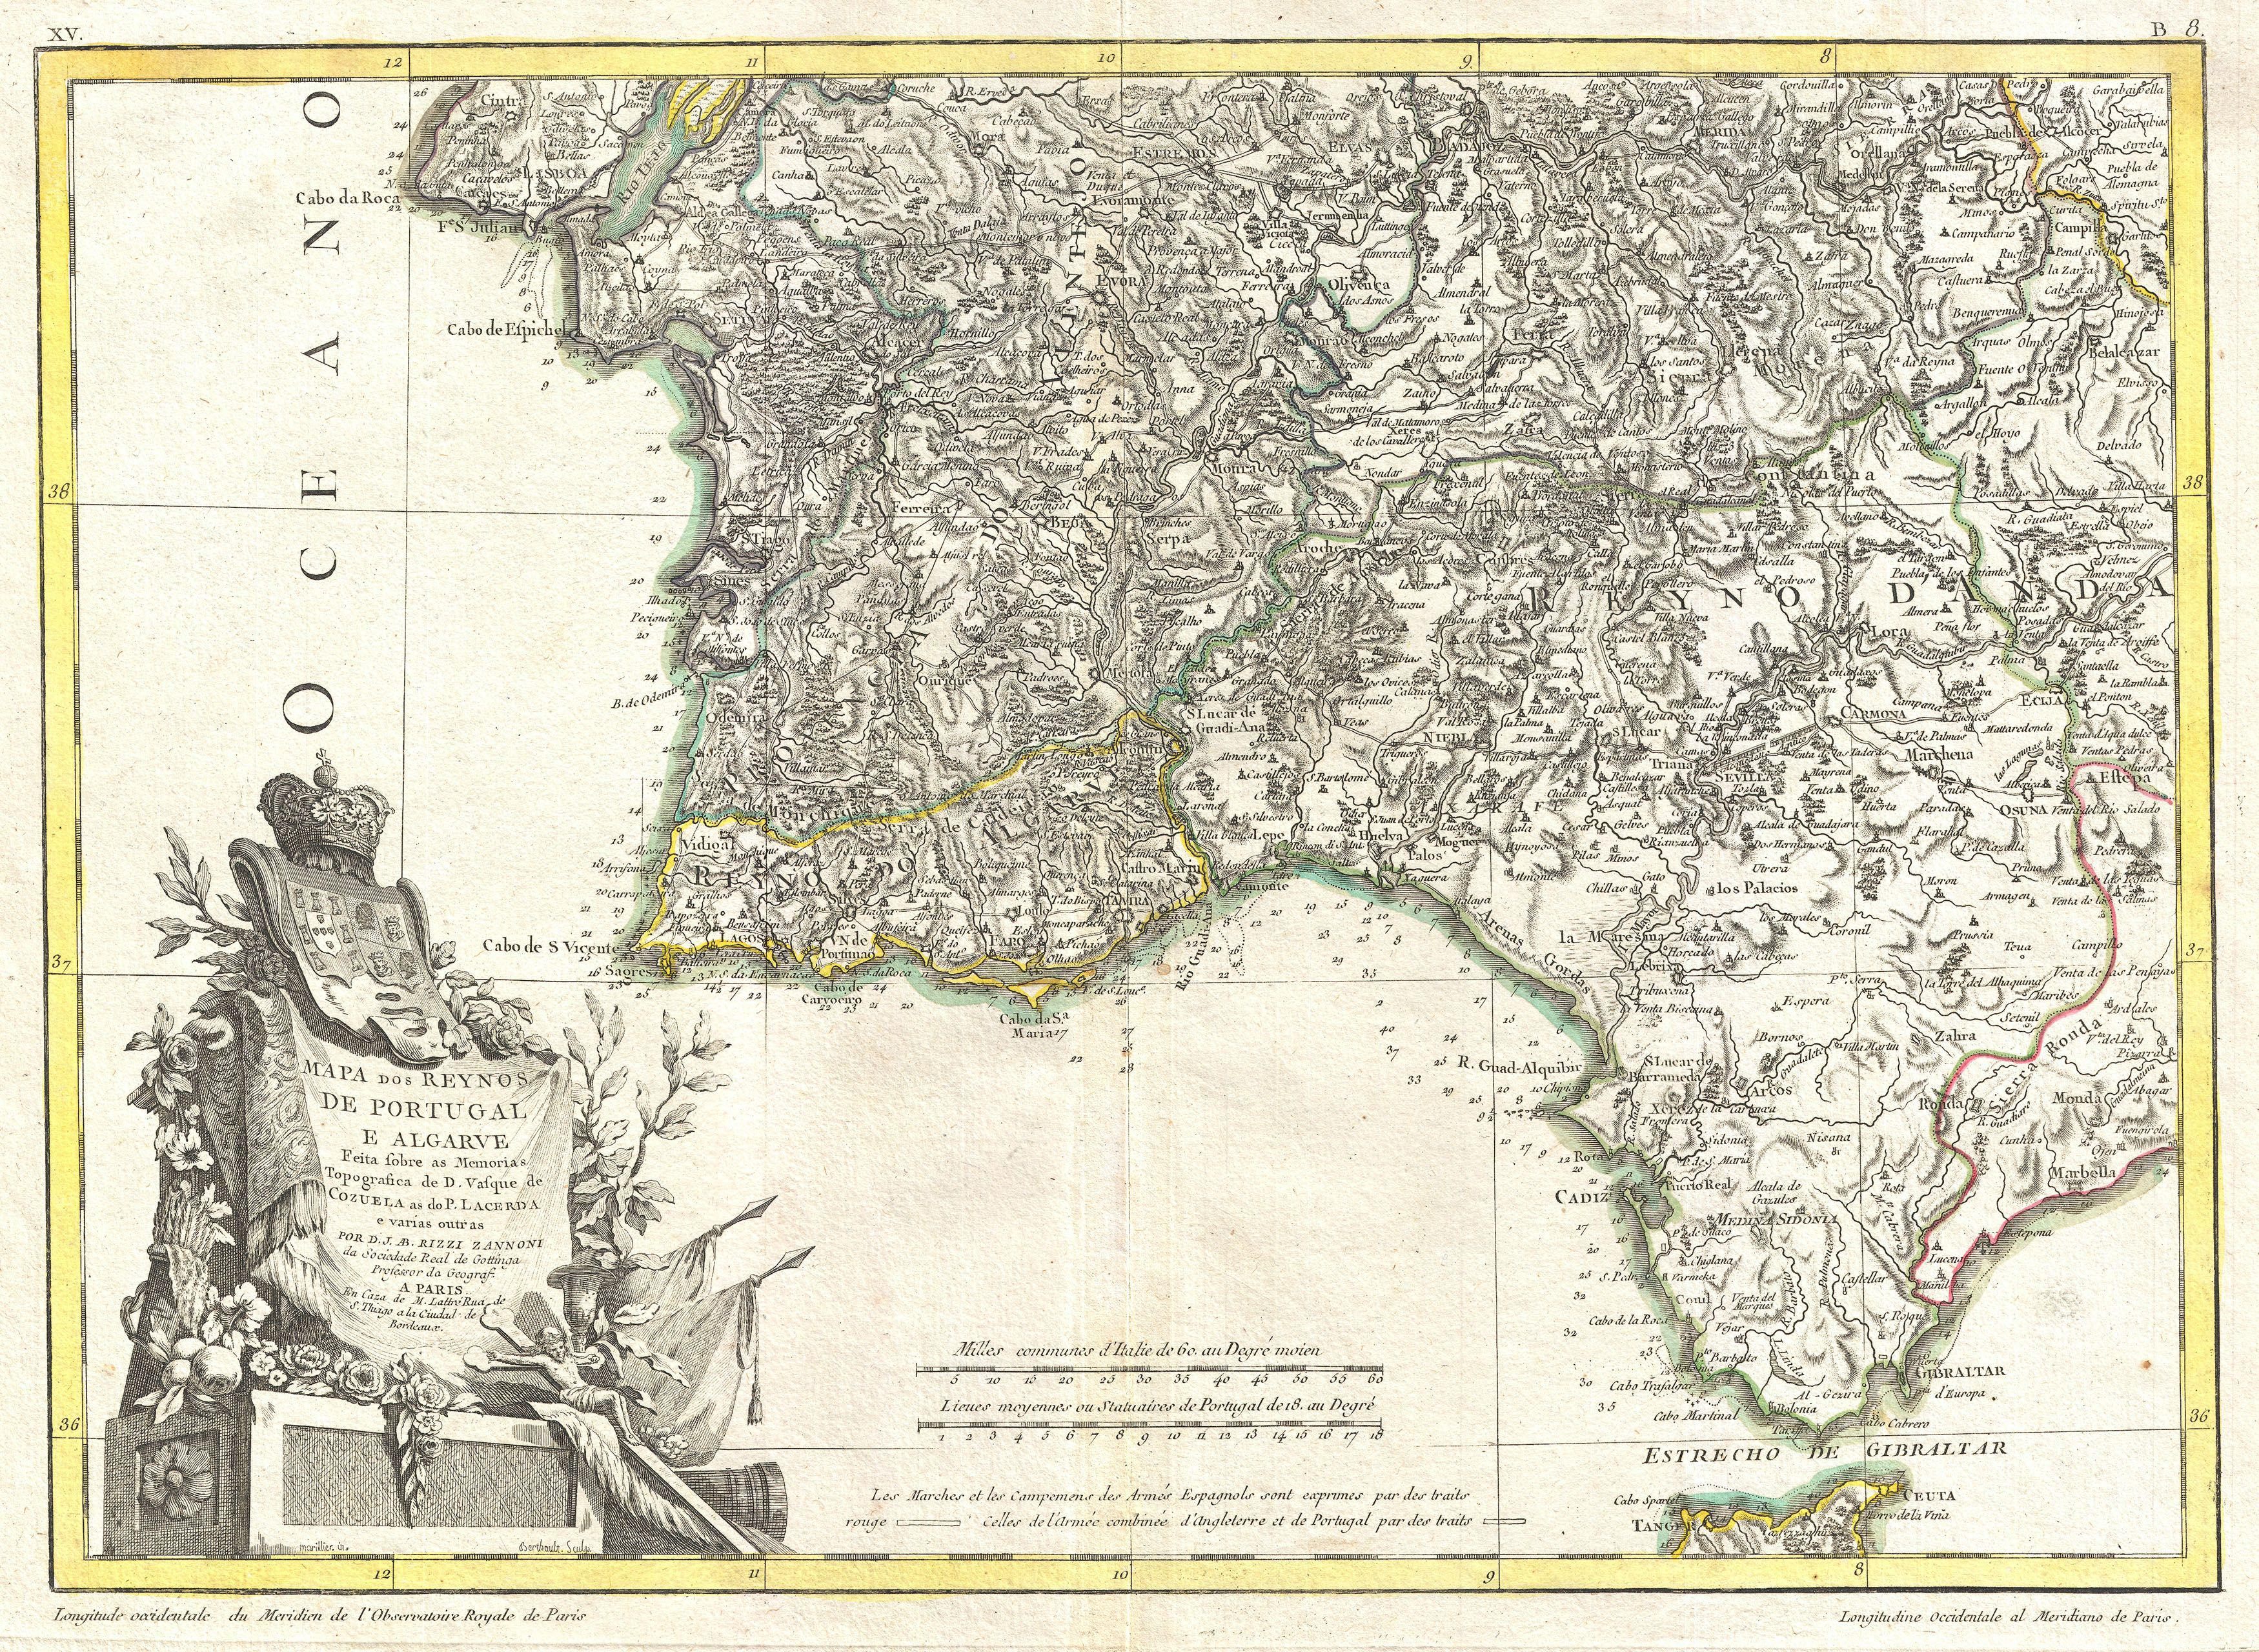 us map with rivers with File 1775 Zannoni Map Of Southern Portugal  The Algarve  And Seville   Geographicus   Portugalalgarve Zannoni 1775 on File 1892 Tourist's New Map of Scotland   Geographicus   Scotland Bartholomew 1892 additionally 3 20Rivers further File 1775 Zannoni Map of Southern Portugal  the Algarve  and Seville   Geographicus   PortugalAlgarve Zannoni 1775 also 60 A D 9 9 6 5 093 in addition CatClan phys.